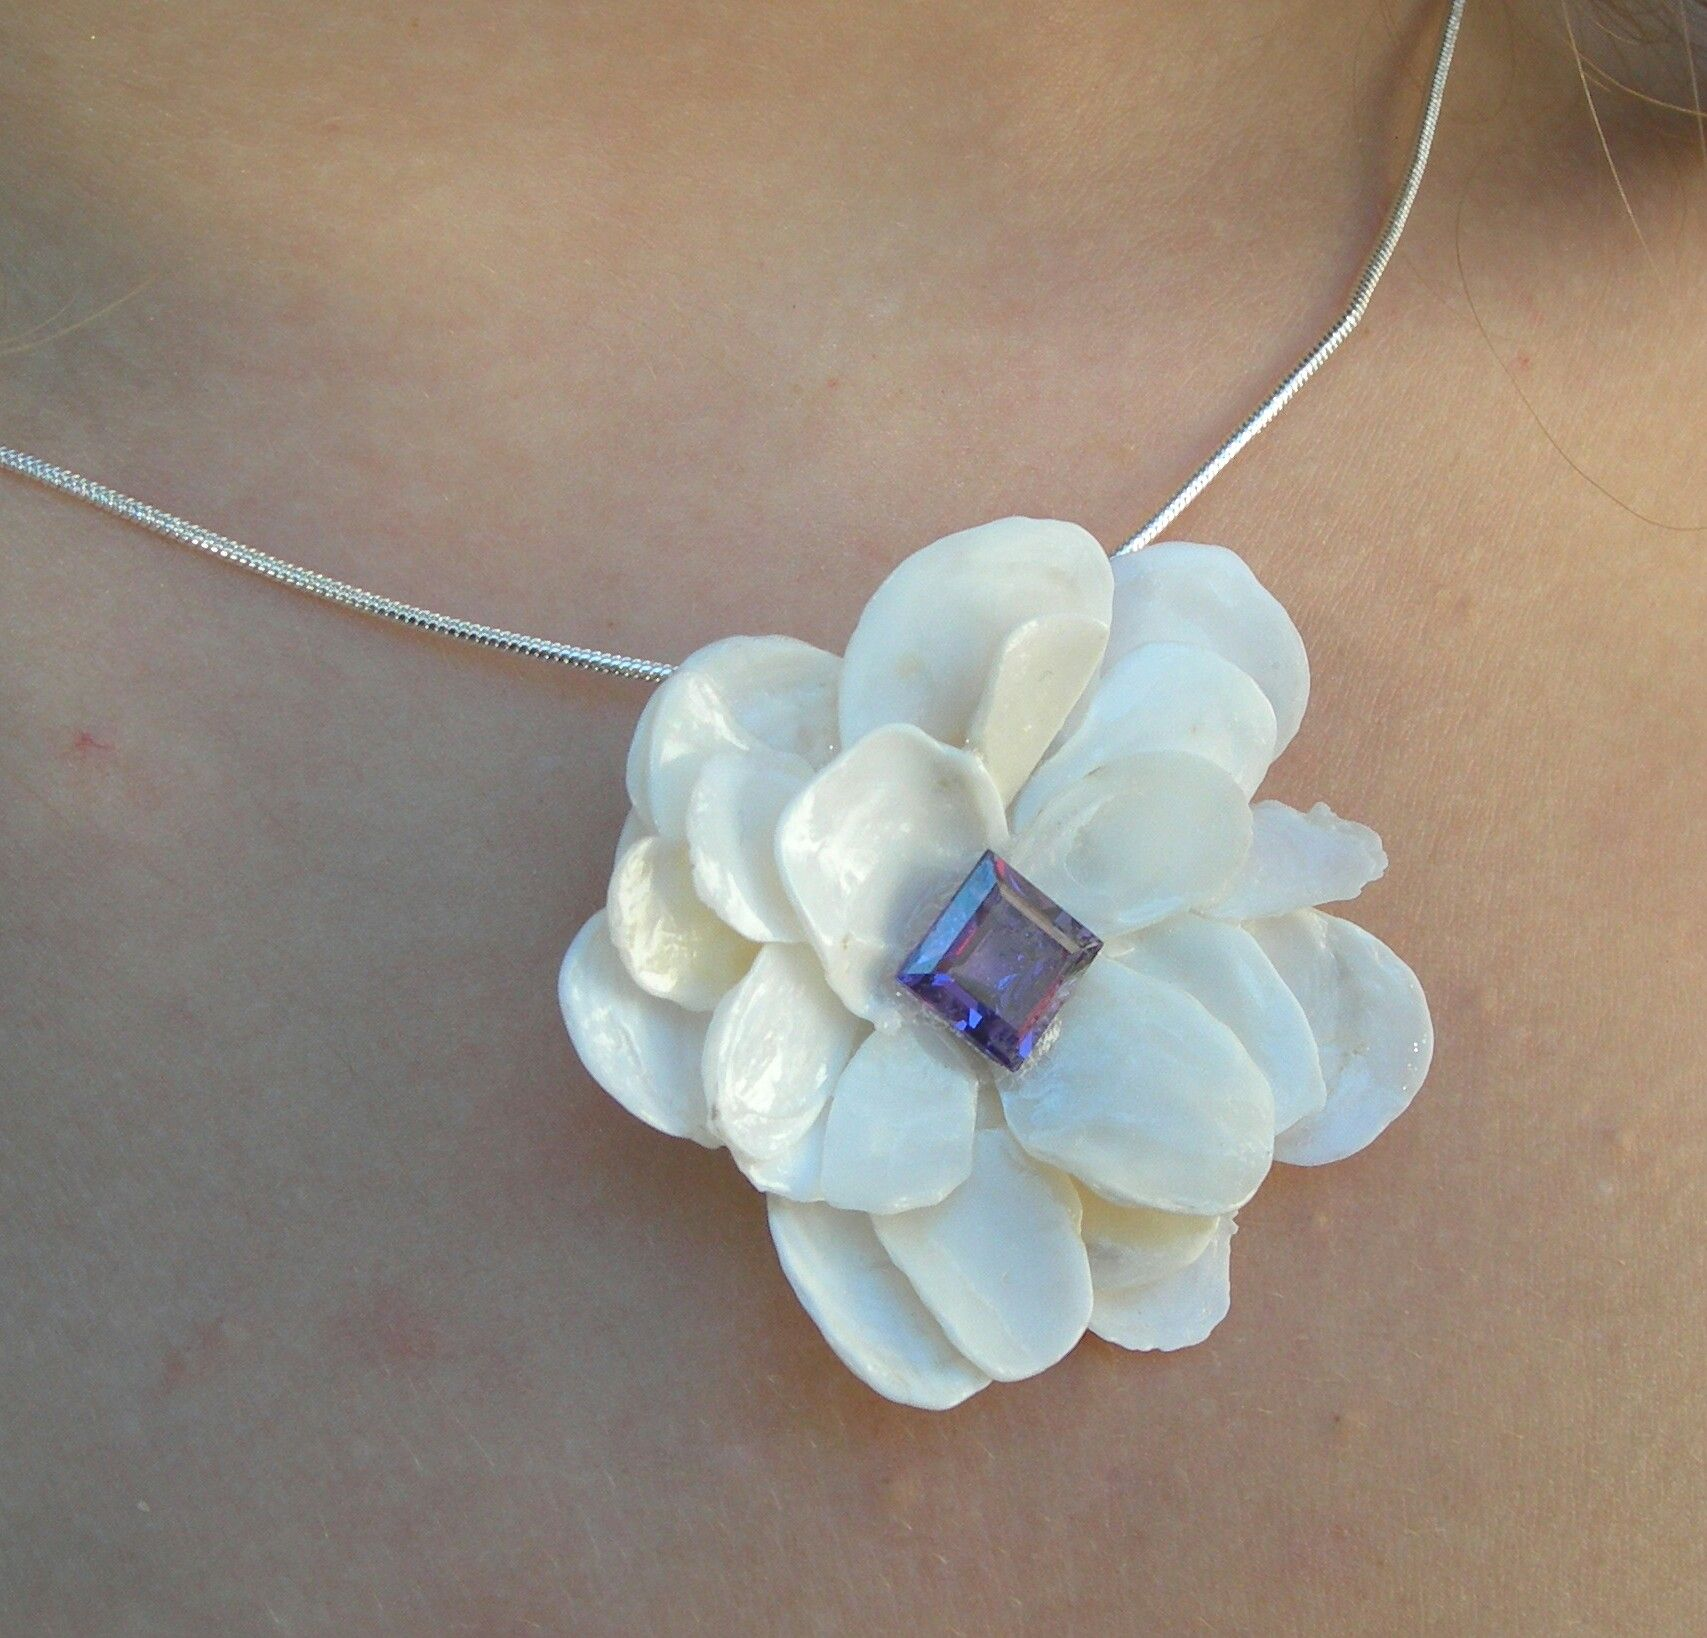 little pieces of shell made into a flower